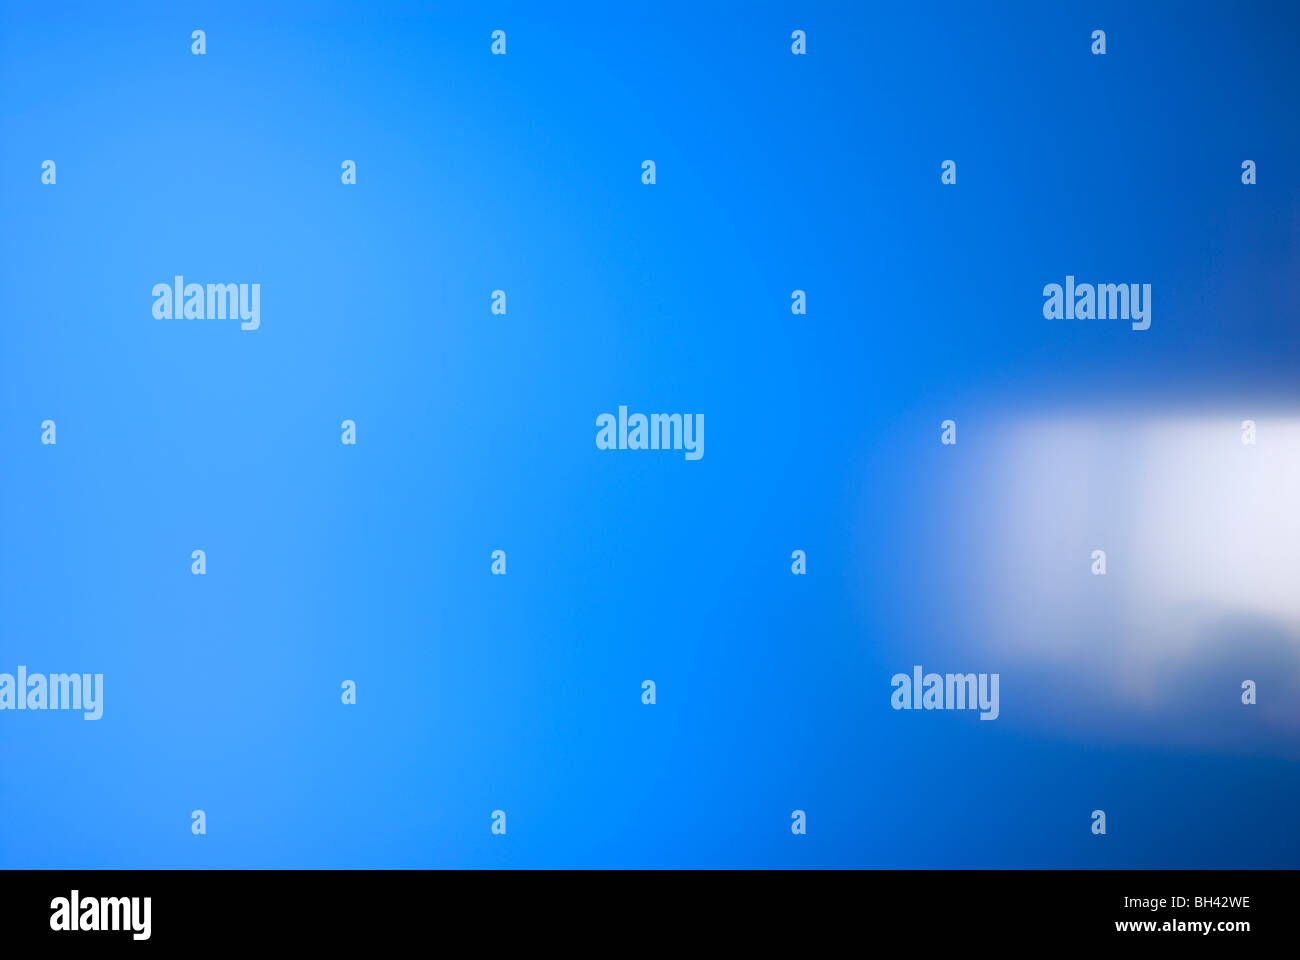 FLAT SCREEN TV BACKGROUND - Stock Image